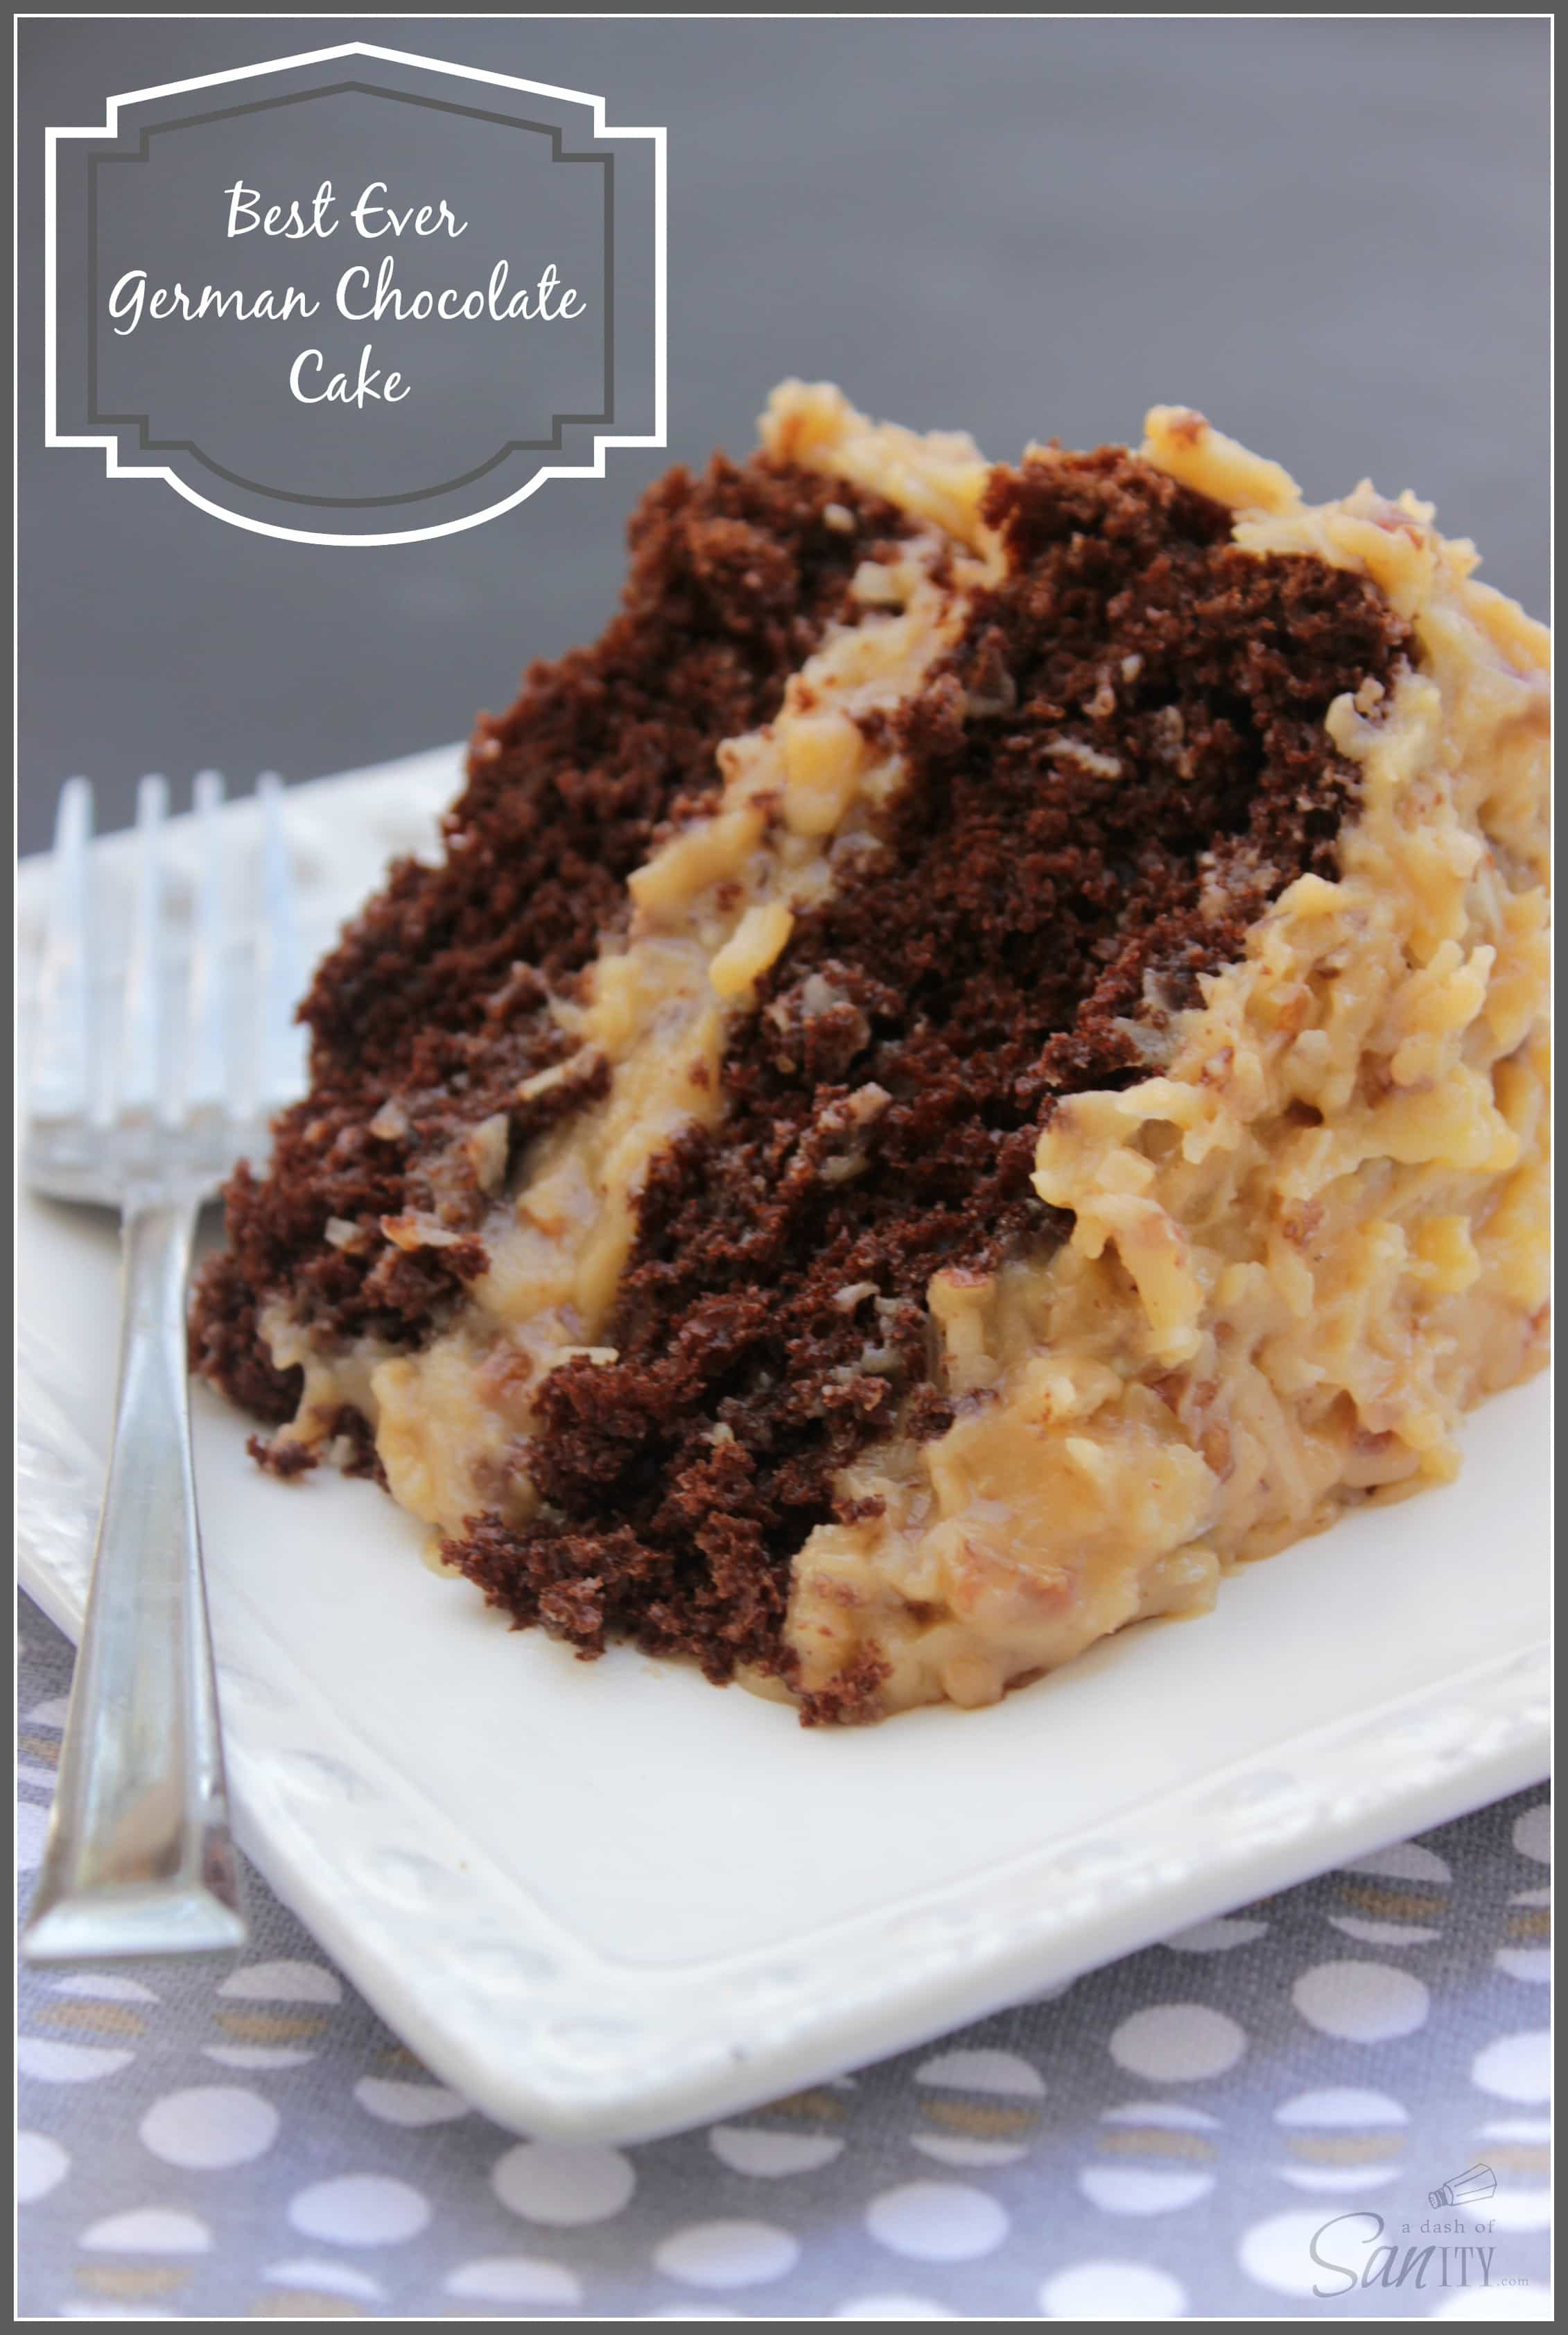 How Do You Make German Chocolate Cake From Scratch